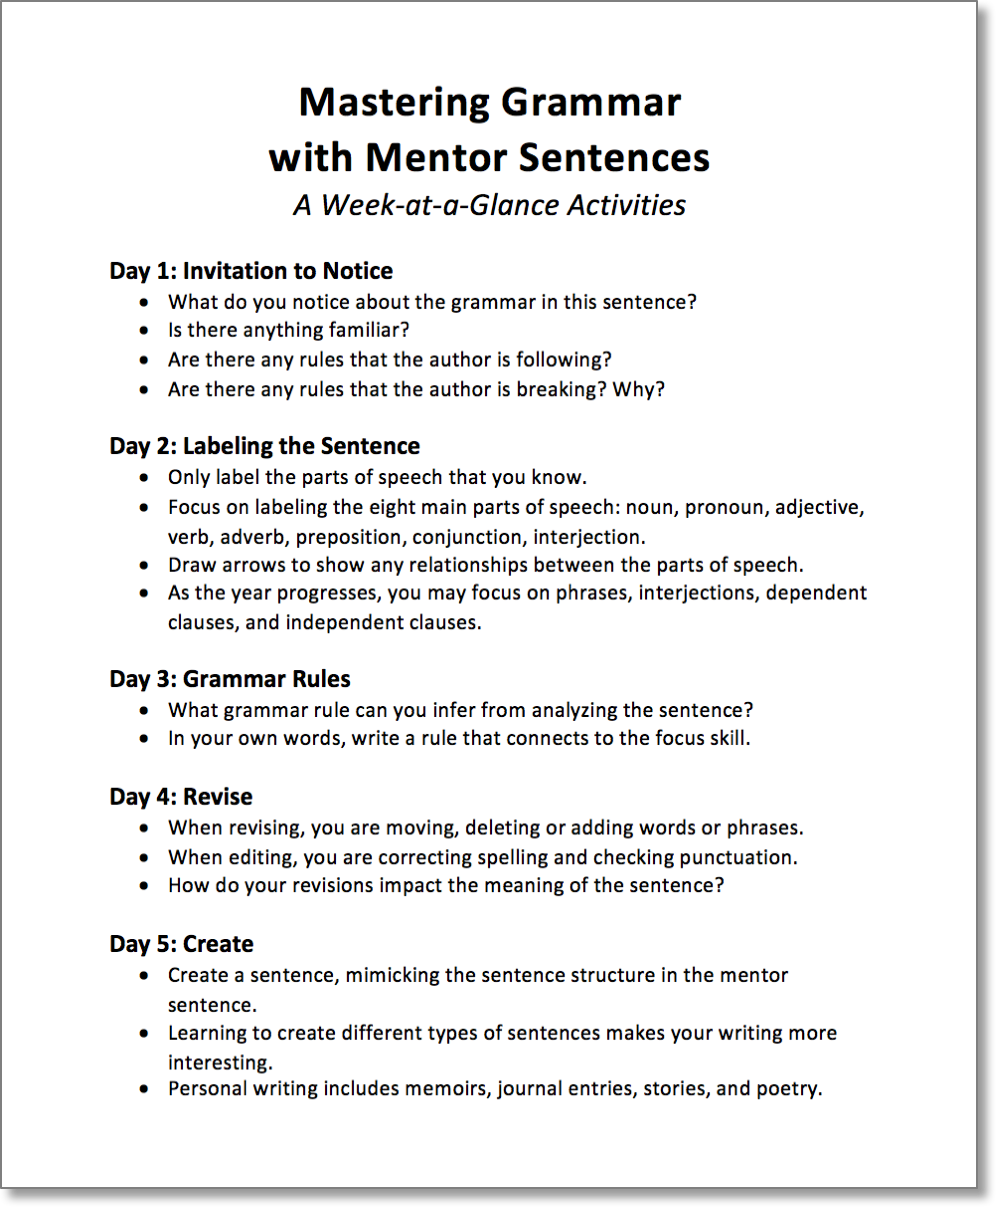 Mastering Grammar With Mentor Sentences, Part 2 | Scholastic